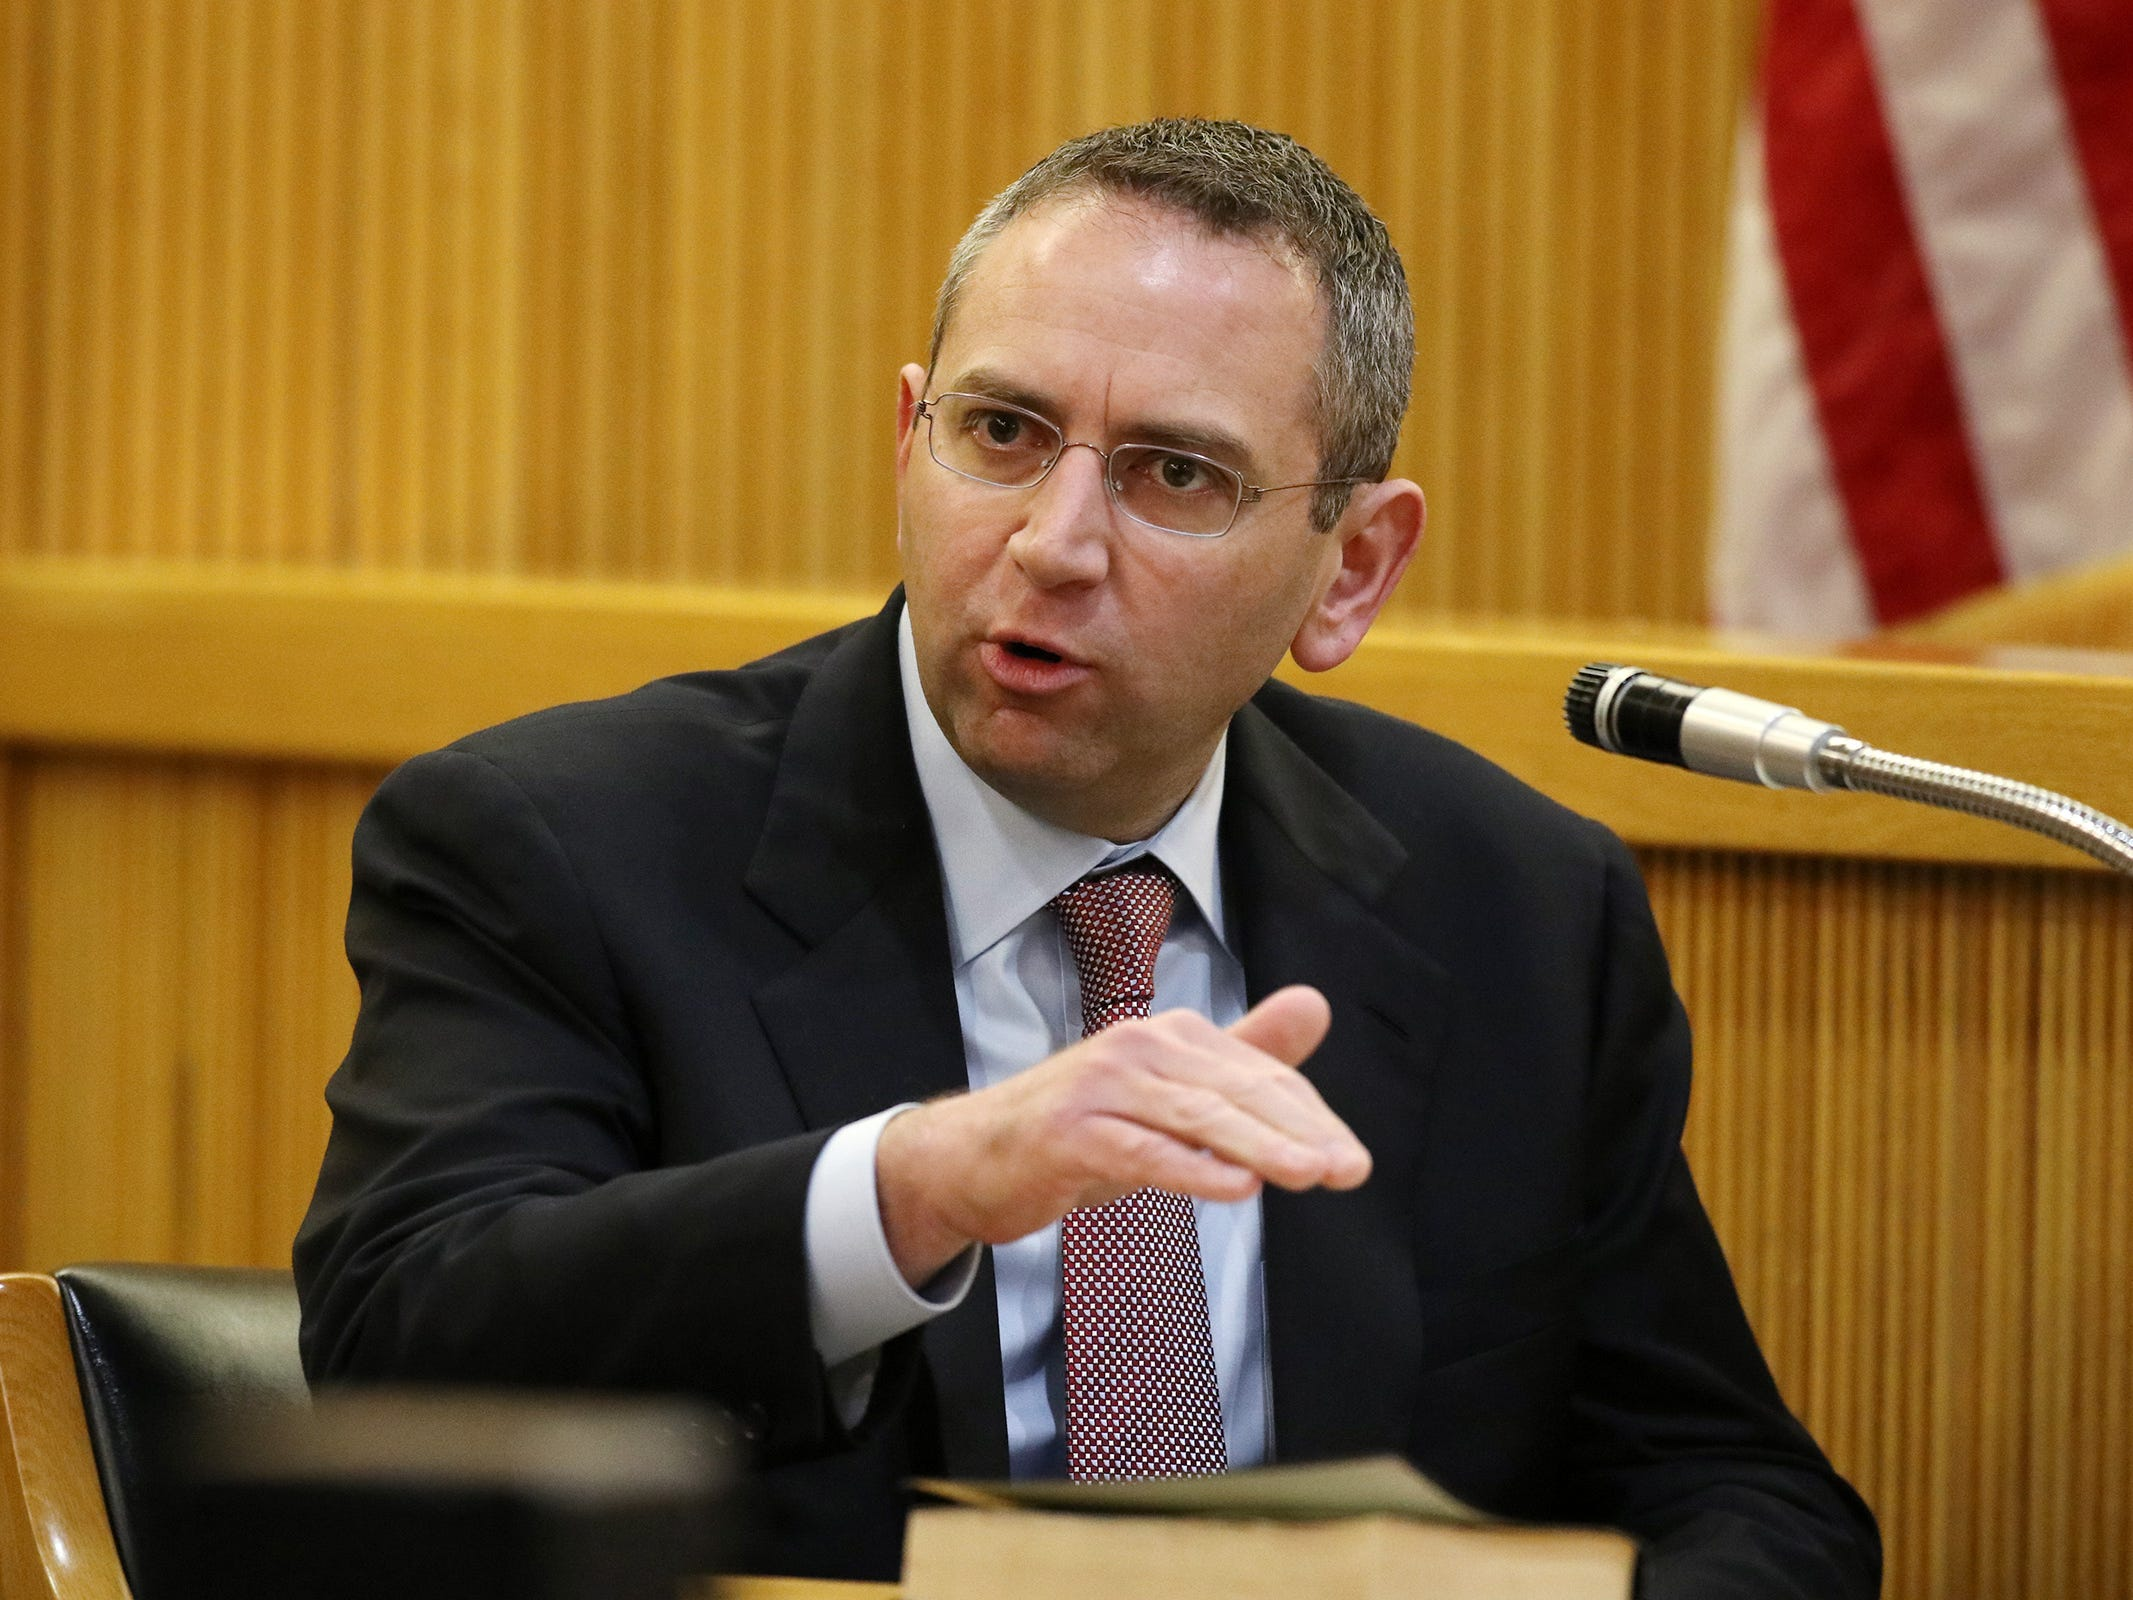 Detective Brian Weisbrot of the Monmouth County Prosecutor's Office, testifies during the trial of Liam McAtasney, who is charged with the murder of former high school classmate, Sarah Stern, before Superior Court Judge Richard W. English at the Monmouth County Courthouse in Freehold, NJ Wednesday, February 20, 2019.